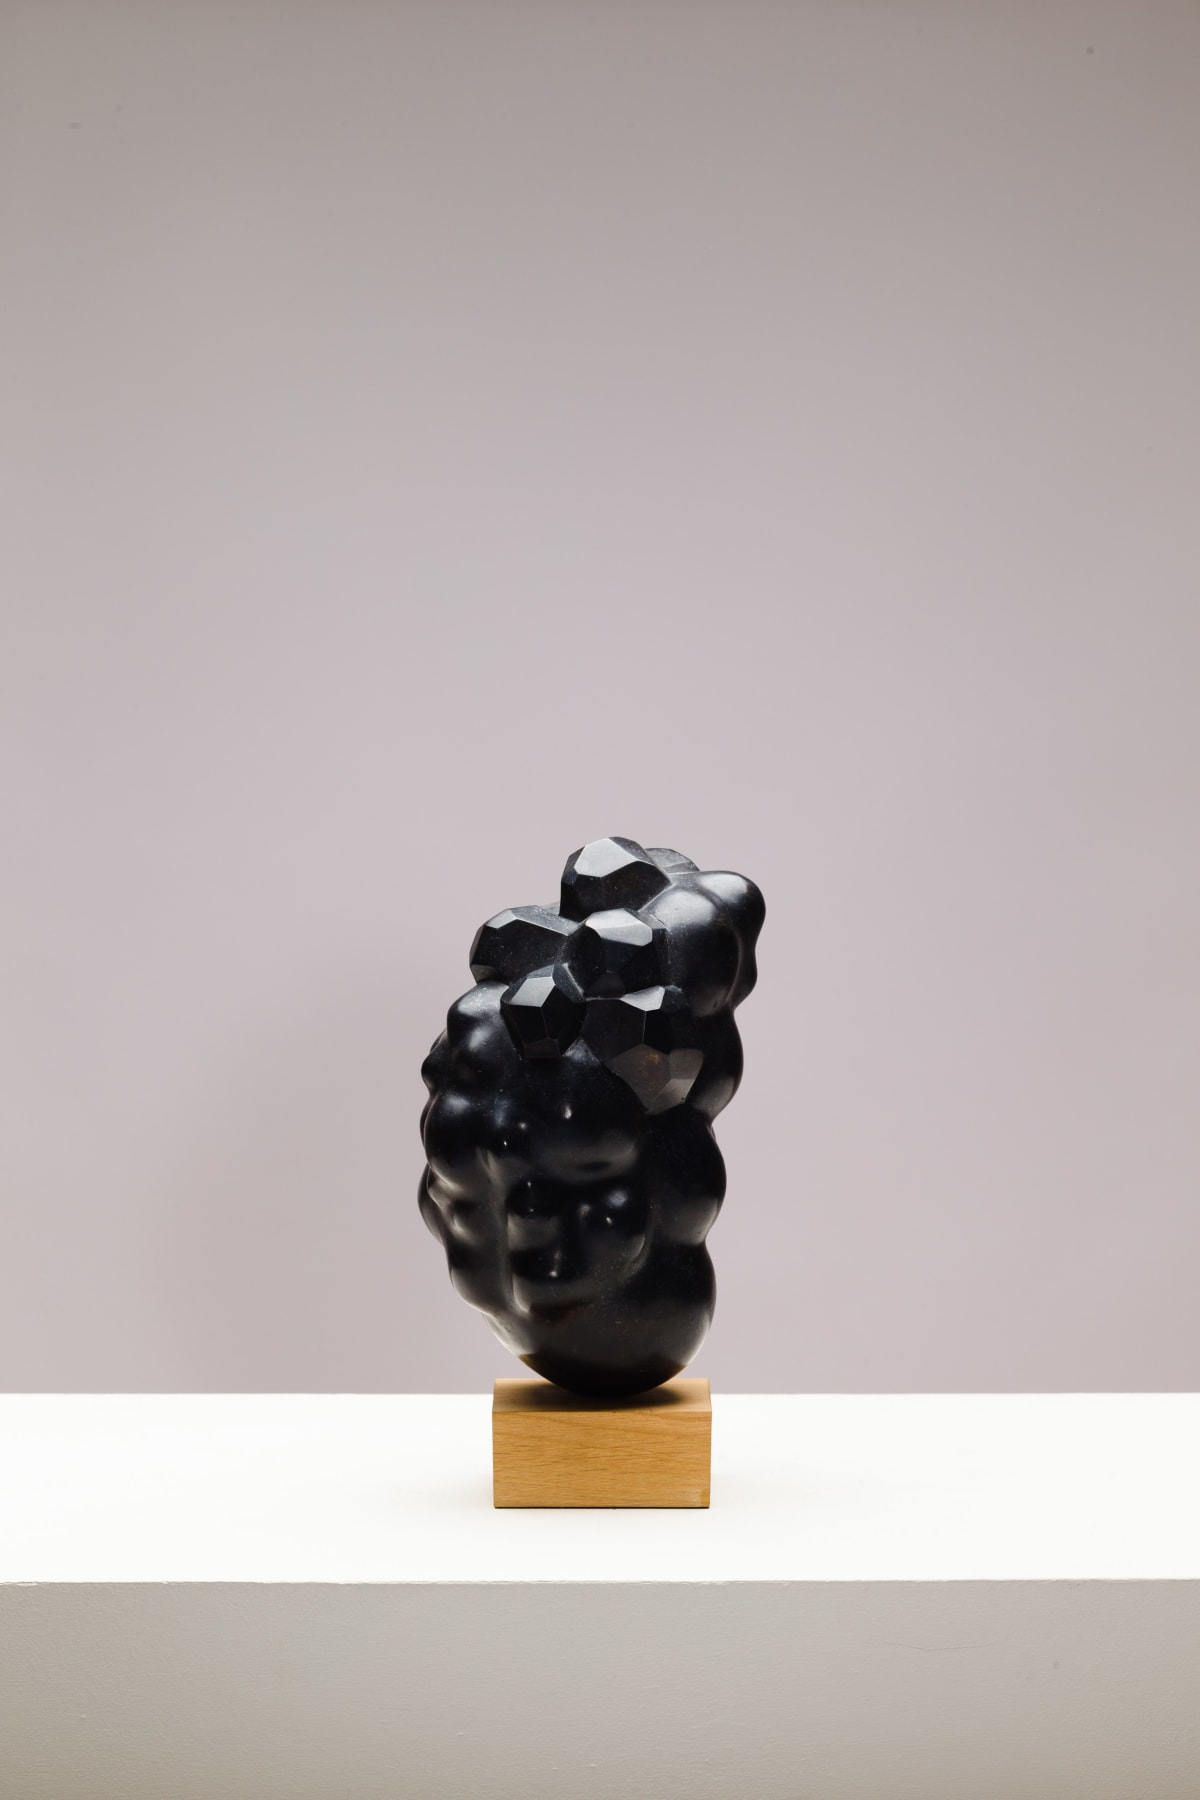 Lawrence Dicks, Breath III, 2019